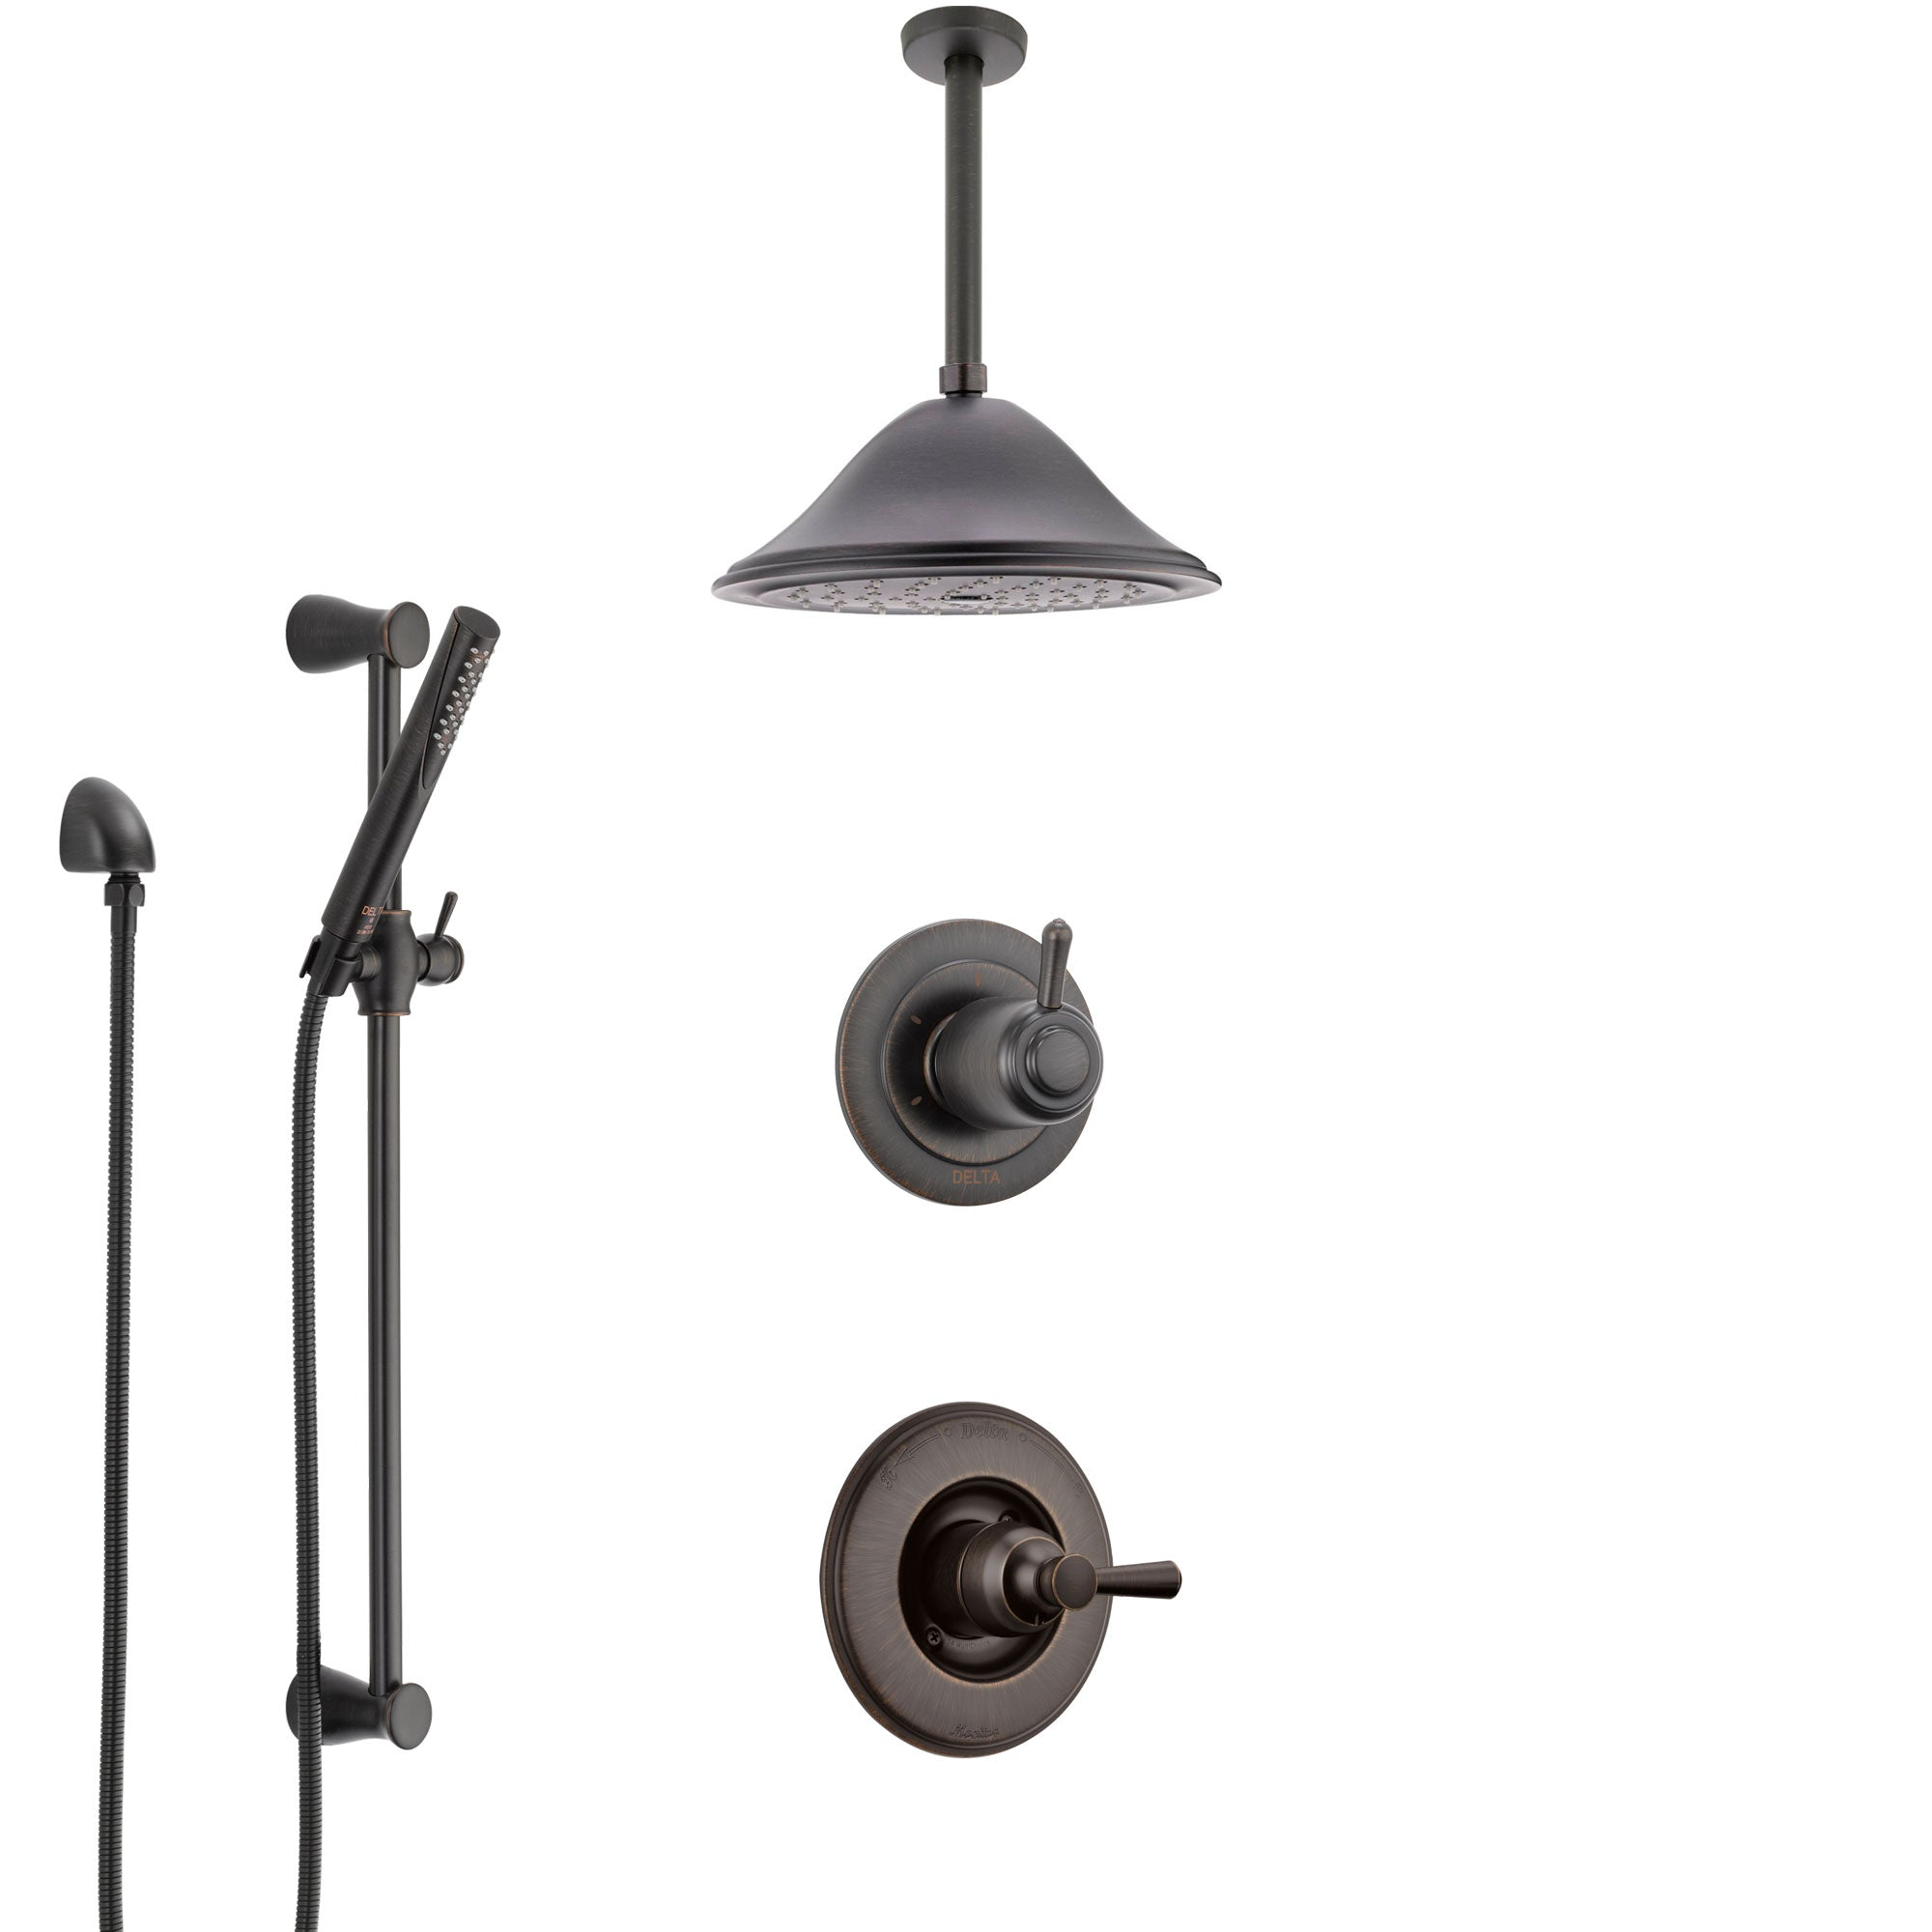 Delta Linden Venetian Bronze Shower System with Control Handle, 3-Setting Diverter, Ceiling Mount Showerhead, and Hand Shower with Slidebar SS1493RB7